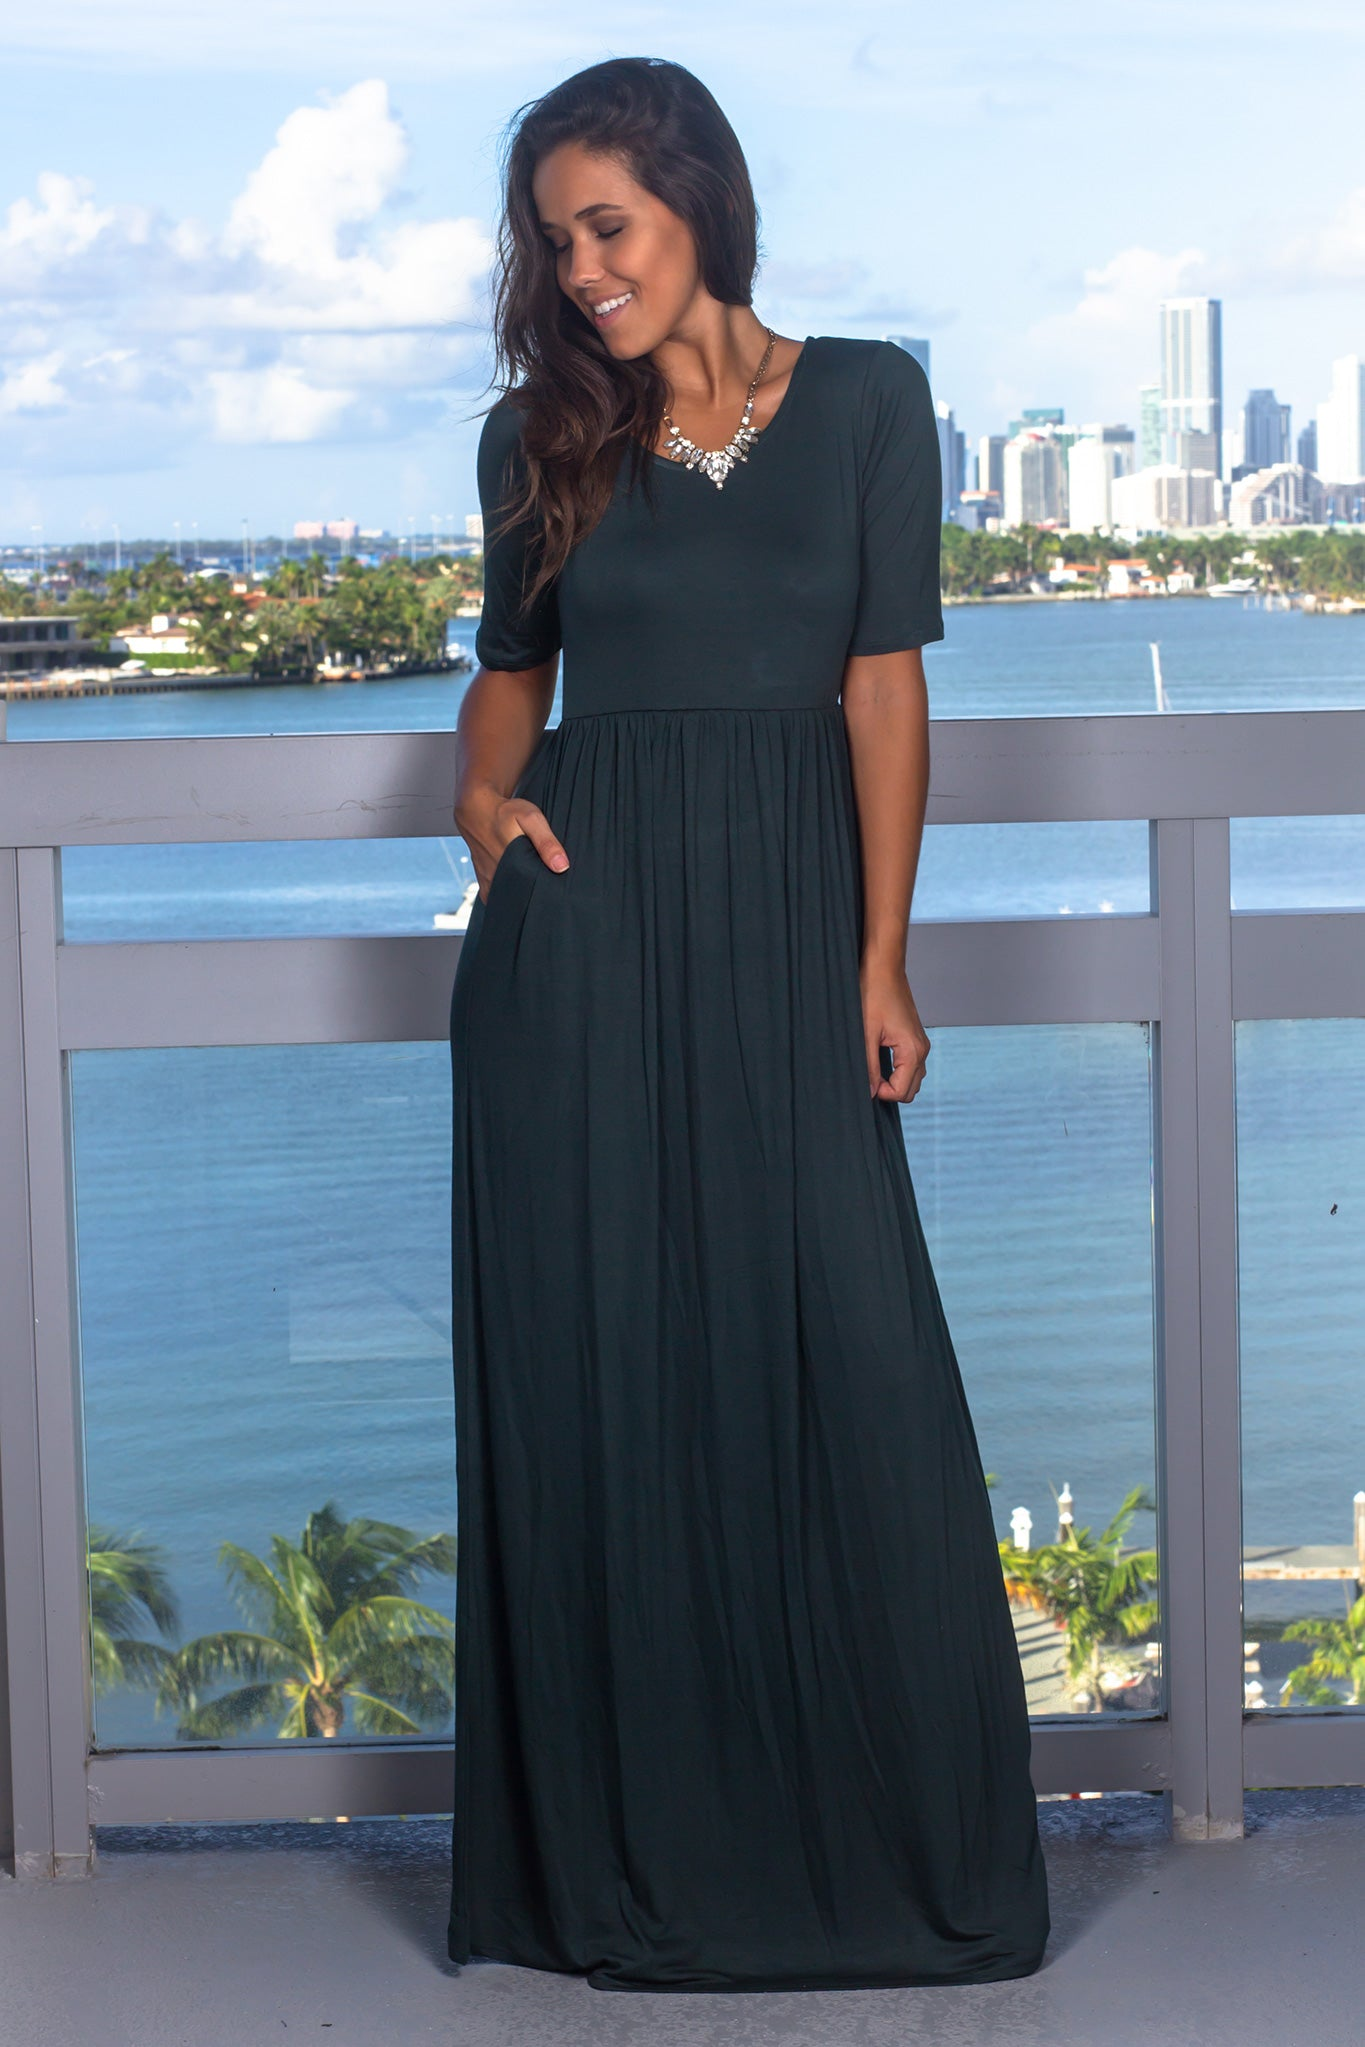 Hunter Green Maxi Dress with 1/2 Sleeves